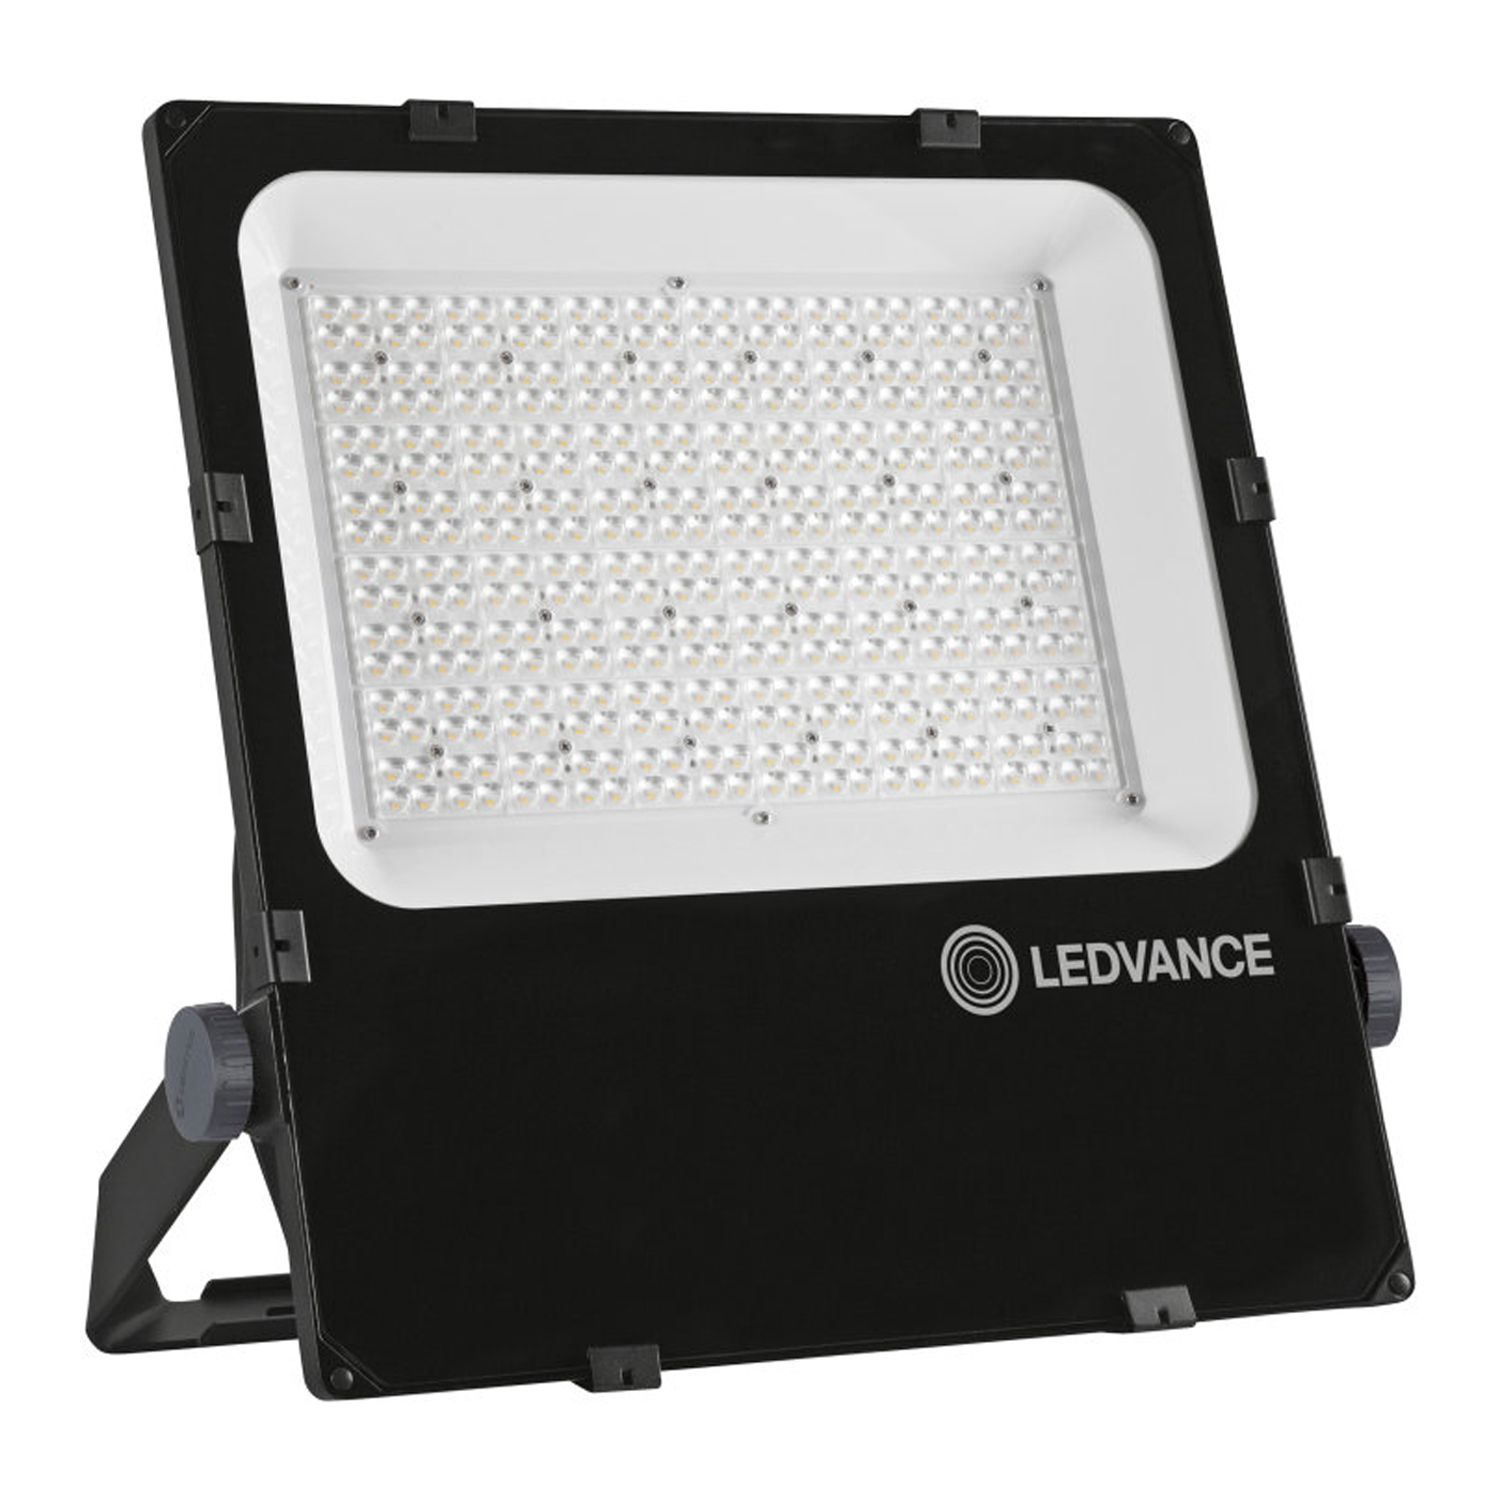 Ledvance LED Floodlight Performance 290W 4000K 40600lm IP66